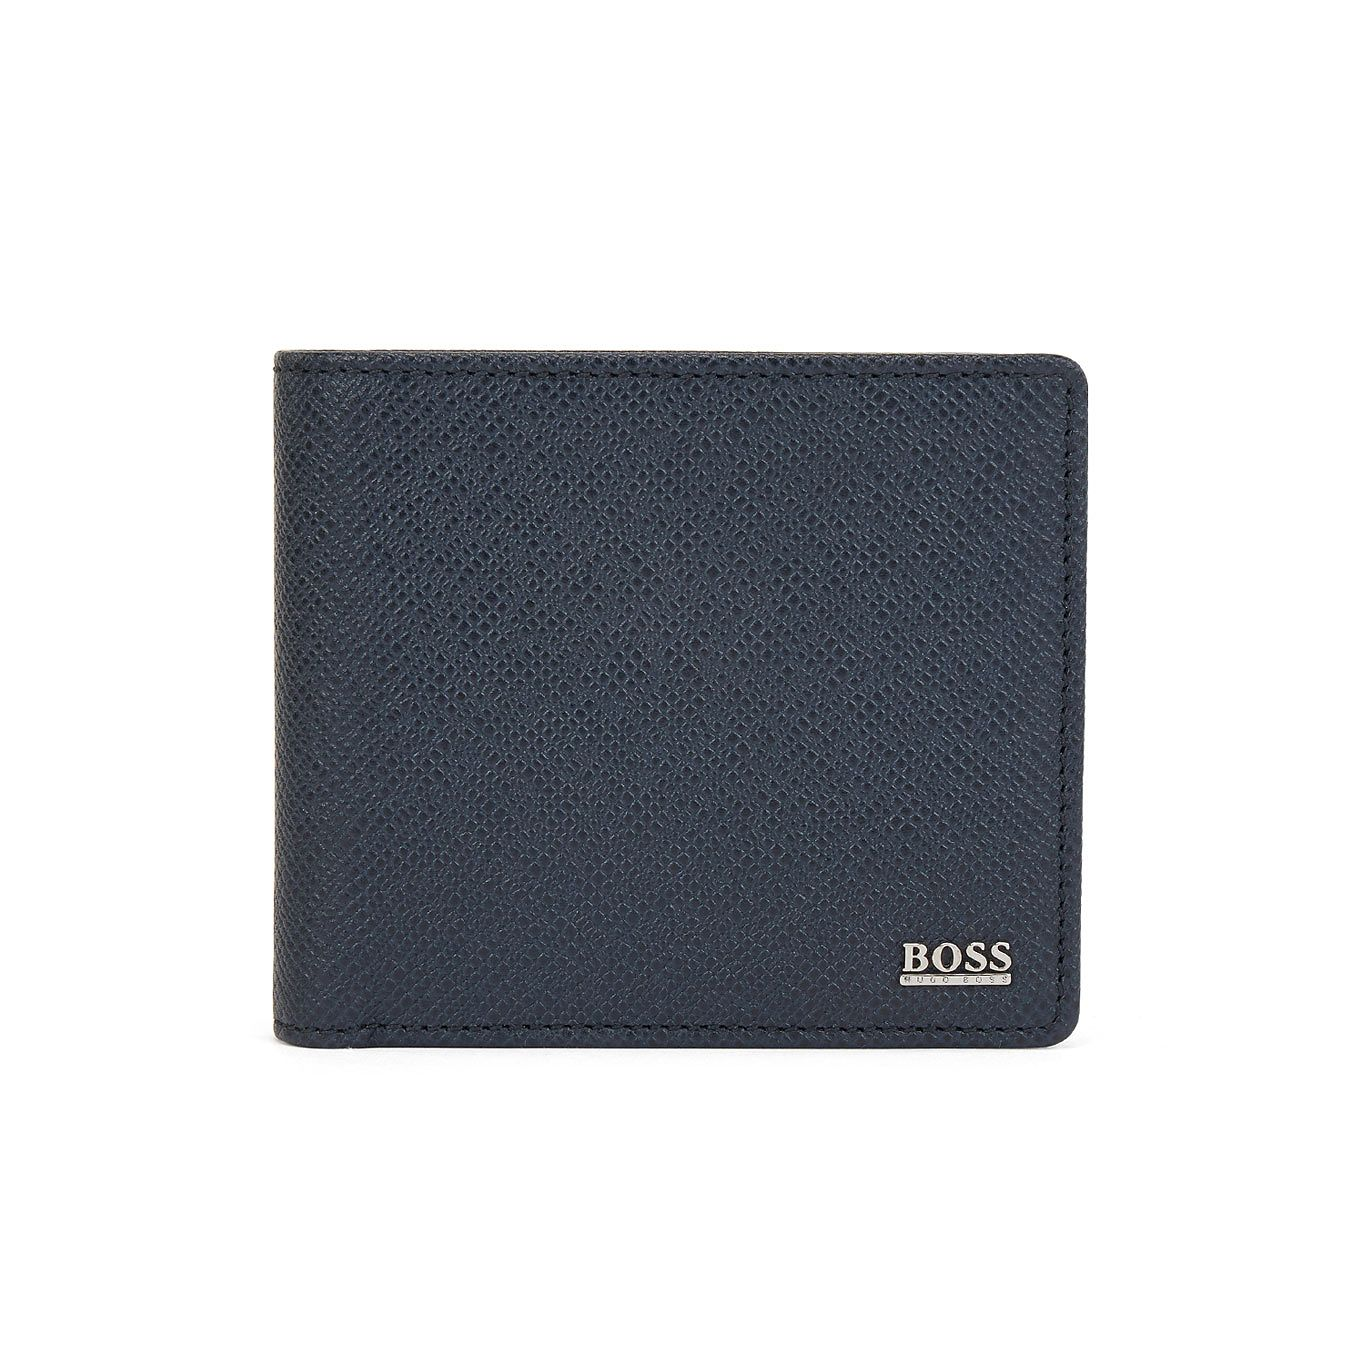 BOSS Signature Men's Grey Leather Wallet - Product number 1096753